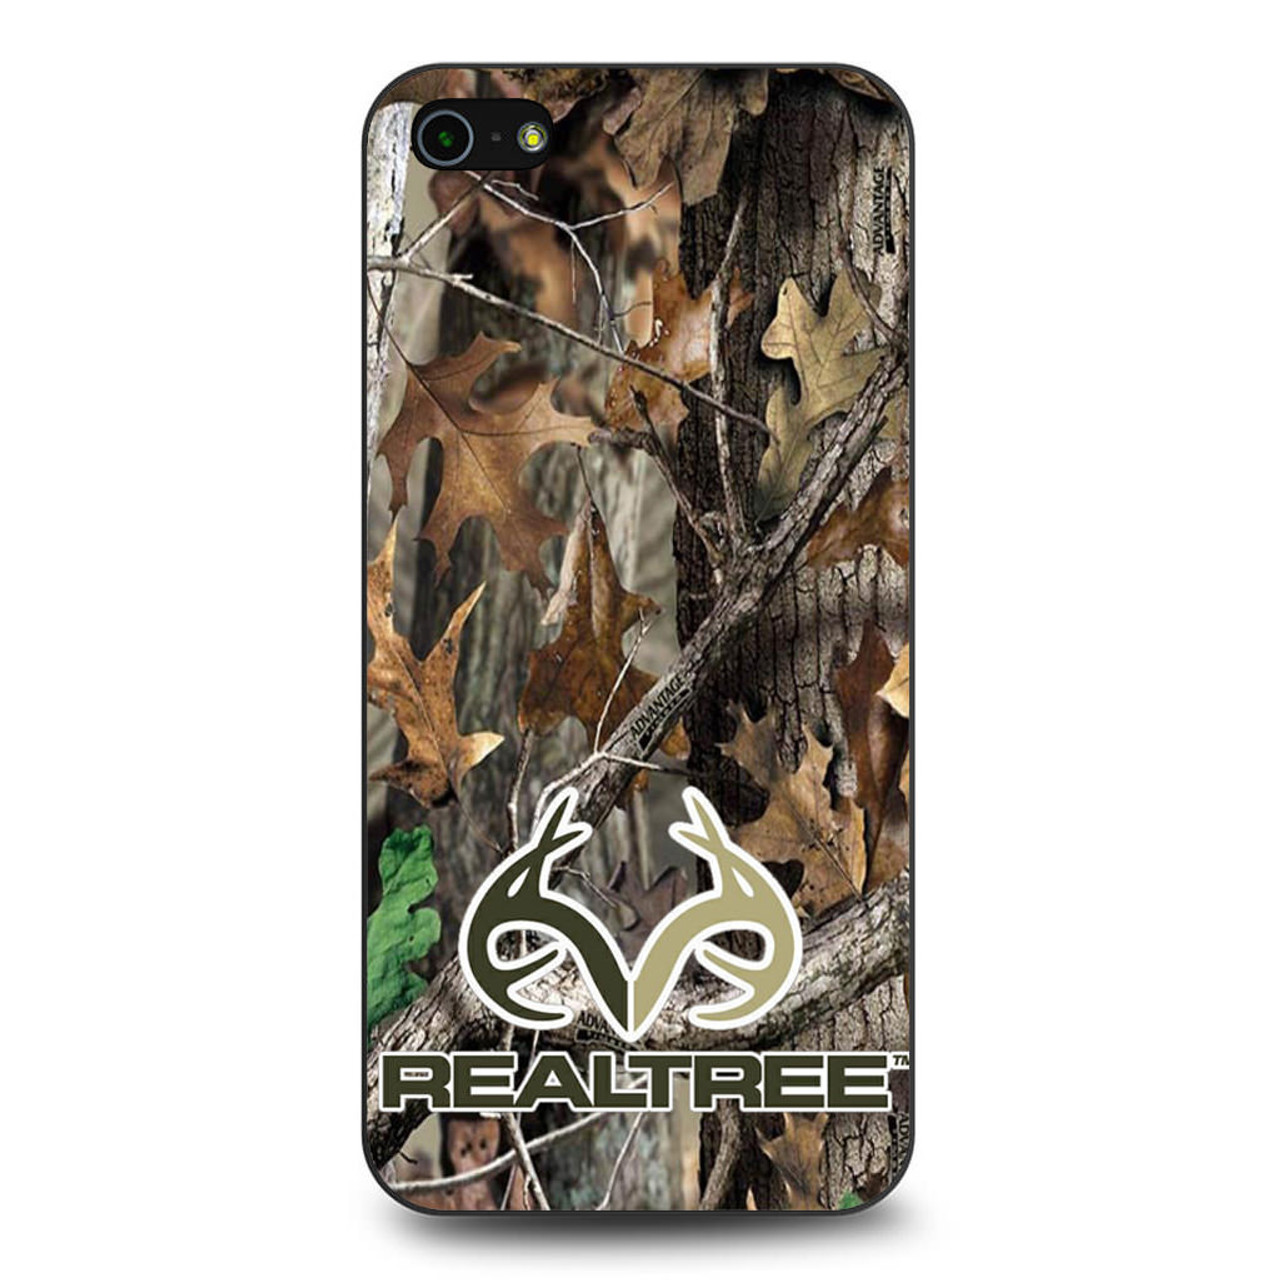 huge discount c9156 170ff Realtree Ap Camo Hunting Outdoor iPhone 5/5S/SE Case